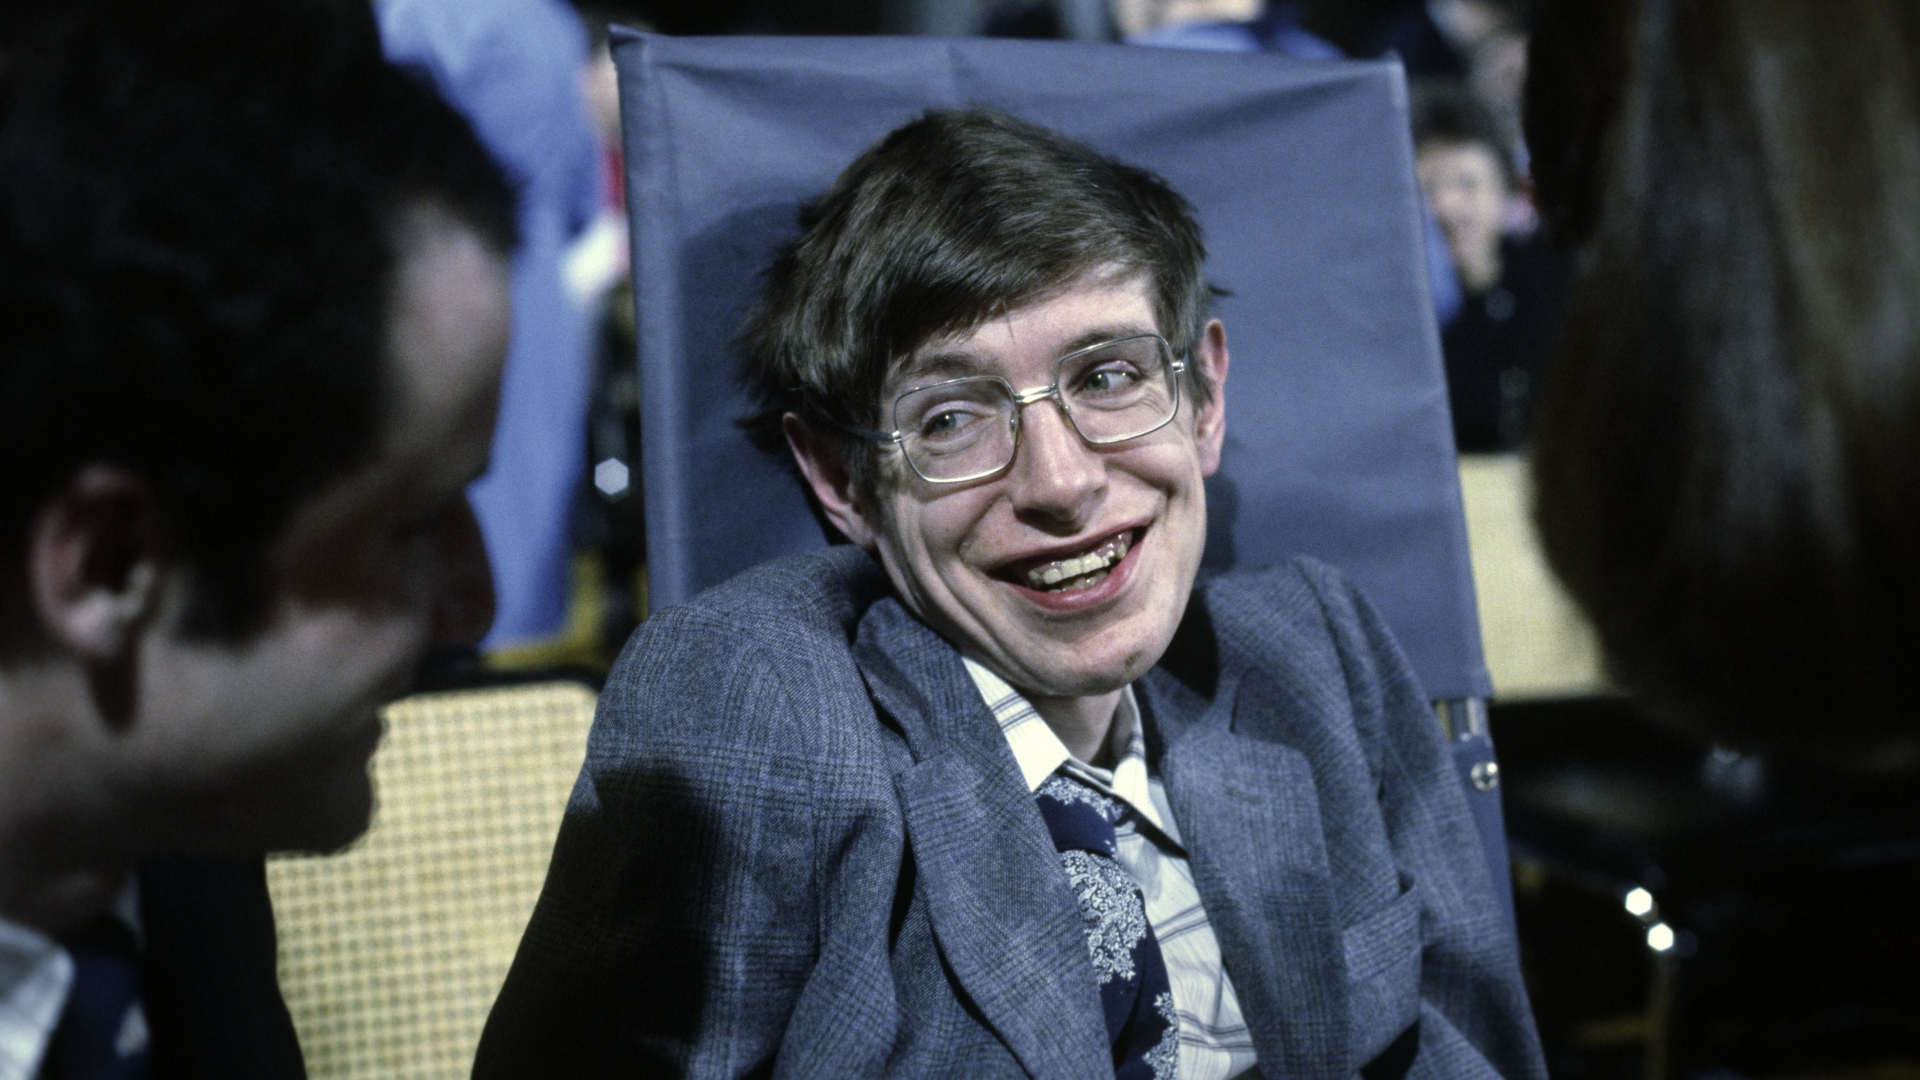 Cosmologist Stephen Hawking on October 10, 1979 in Princeton, New Jersey. (Credit: Santi Visalli/Getty Images)